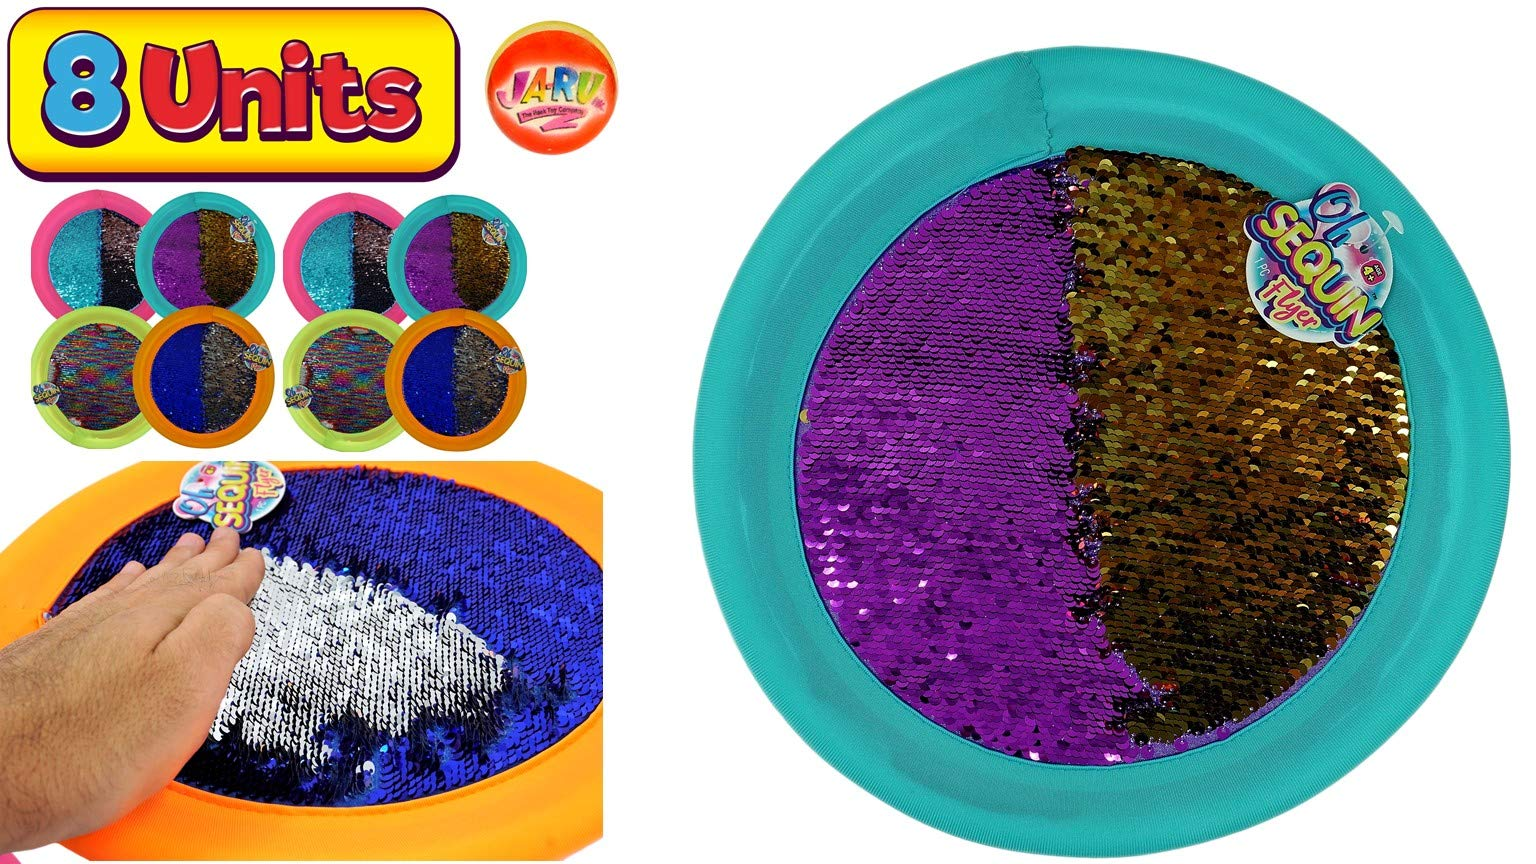 JA-RU Soft Flying Disc Wet or Dry Safe 11'' (8 Pack) Frisbees with Sequin Shimmery Material, Kids & Adults Toys Games for Beach Lake Pool Playground & Outdoors Party. Plus 1 Bouncy Ball. 4637-8P by JA-RU